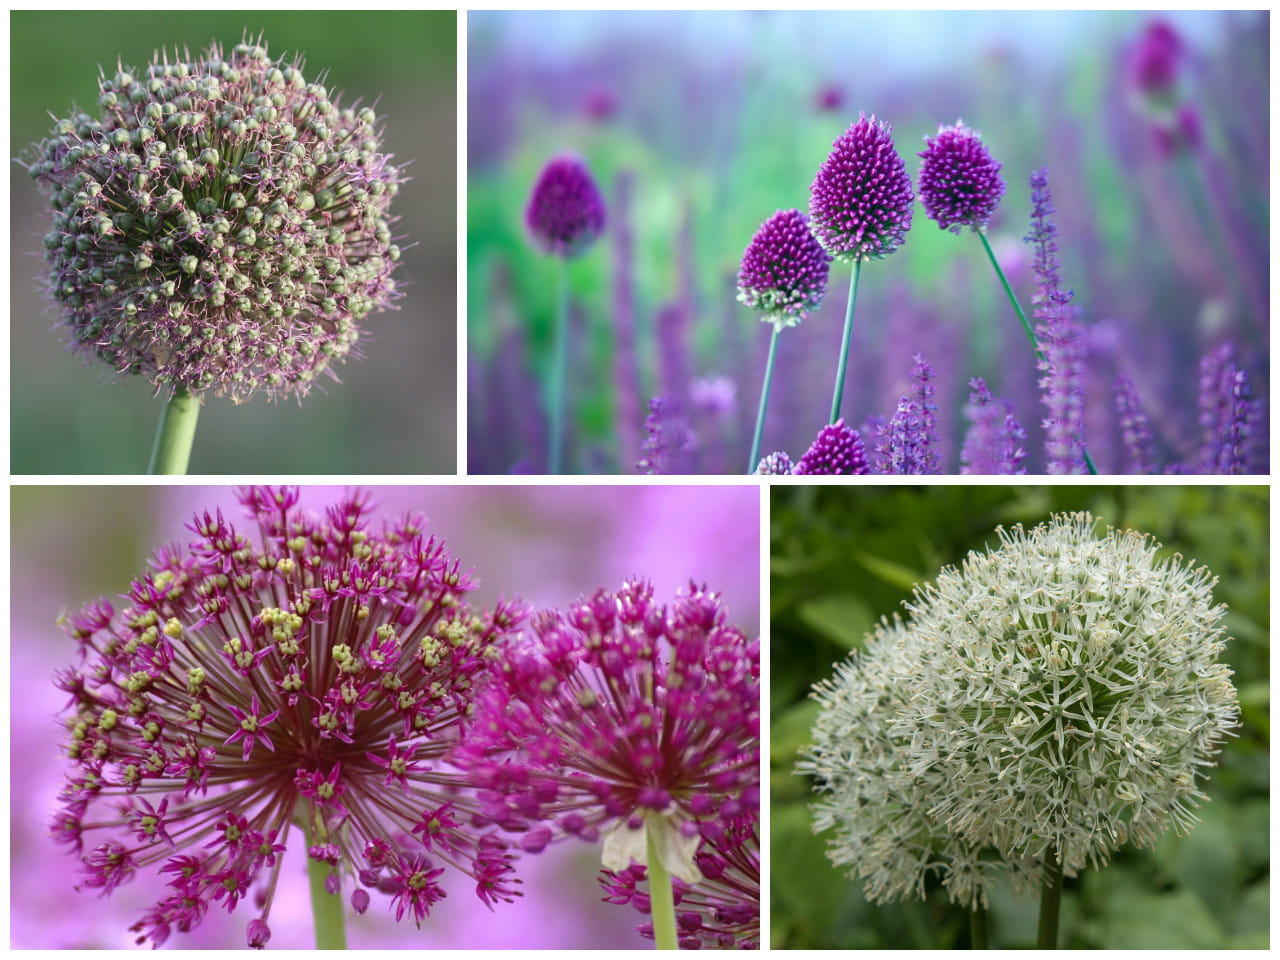 Allium varieties (clockwise from top left): Allium 'Gladiator', Allium sphaerocephalon, Allium 'Mount Everest' and Allium 'Globemaster'